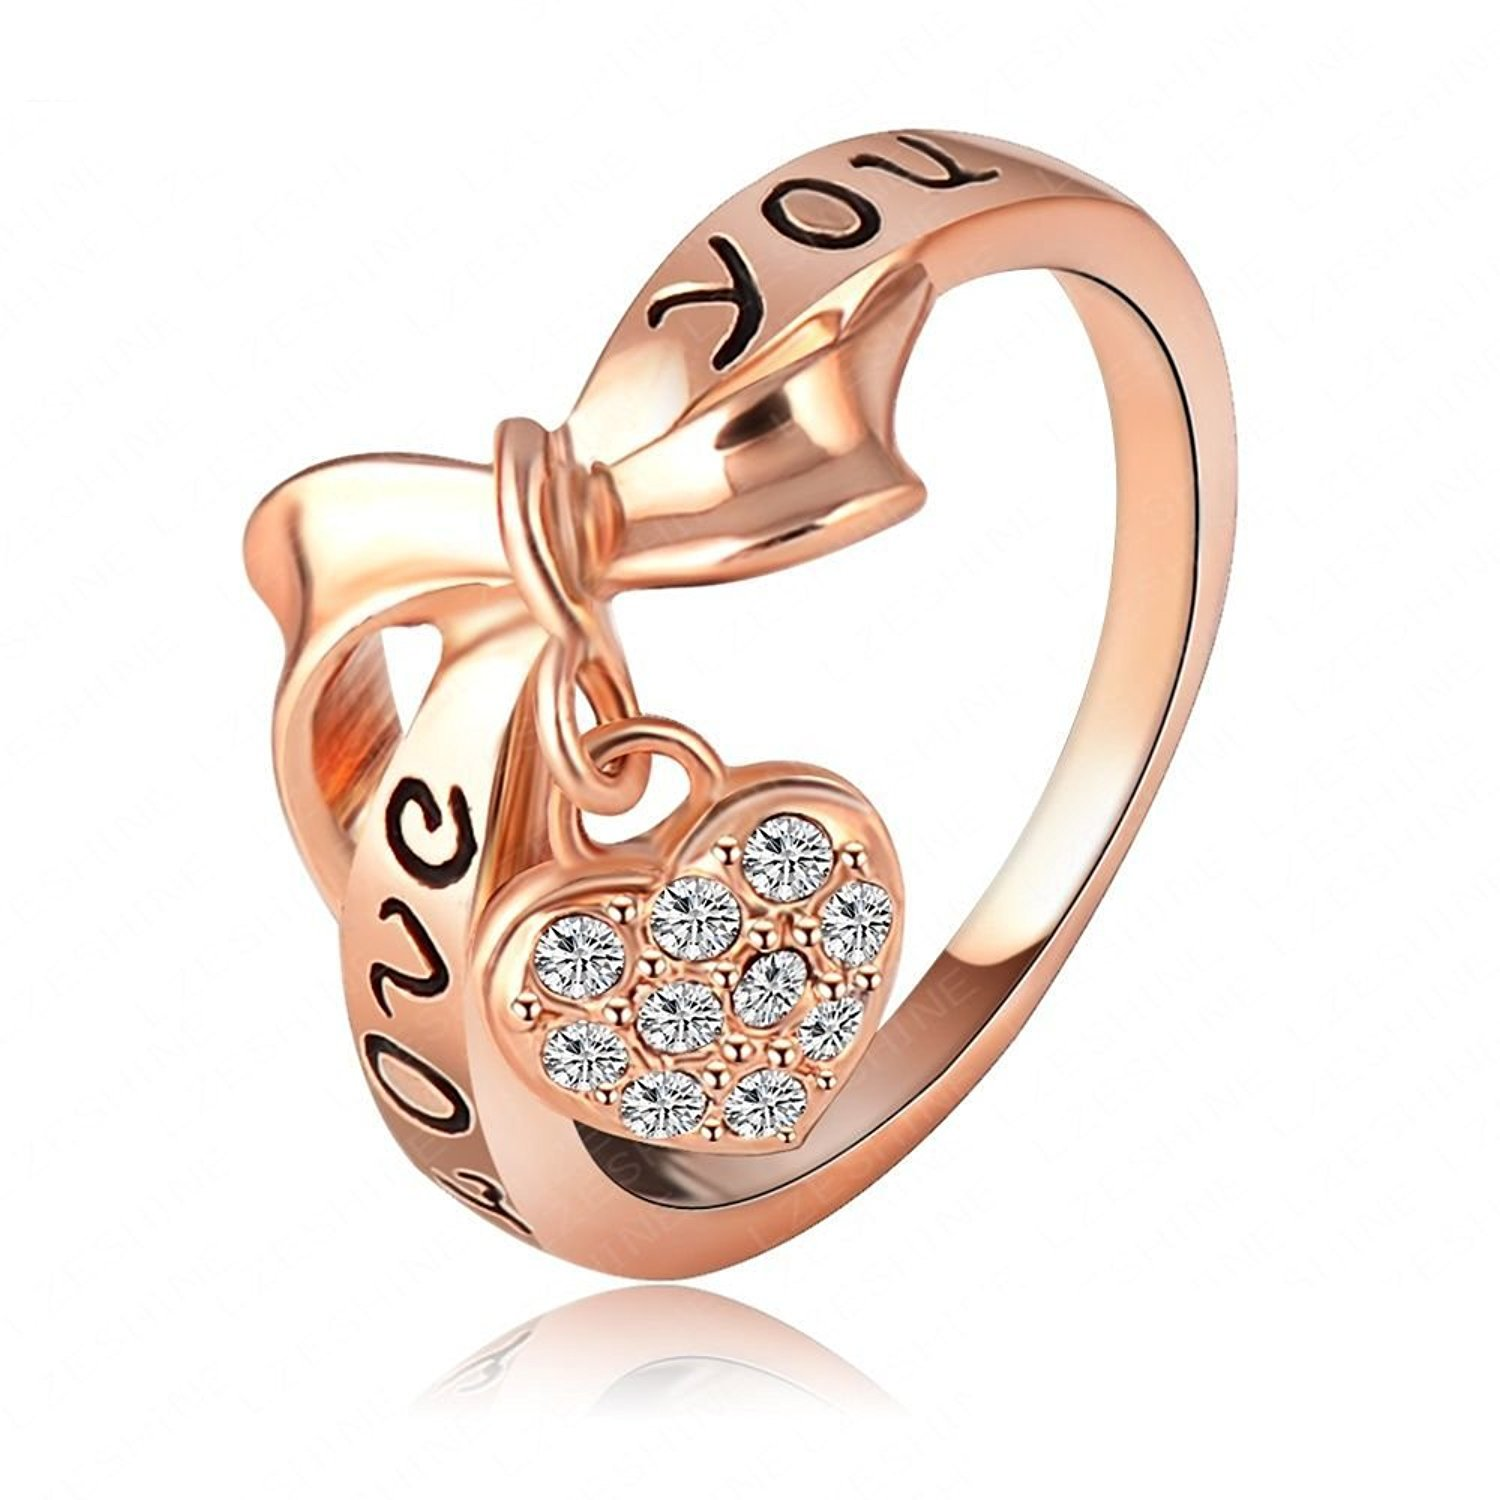 Love You Jewelry Rings Rose Gold/18K Gold Plate Austrian Crystal Ring Fashion Jewelry Accessories Mother's Day Gift Valentine's Day Wedding